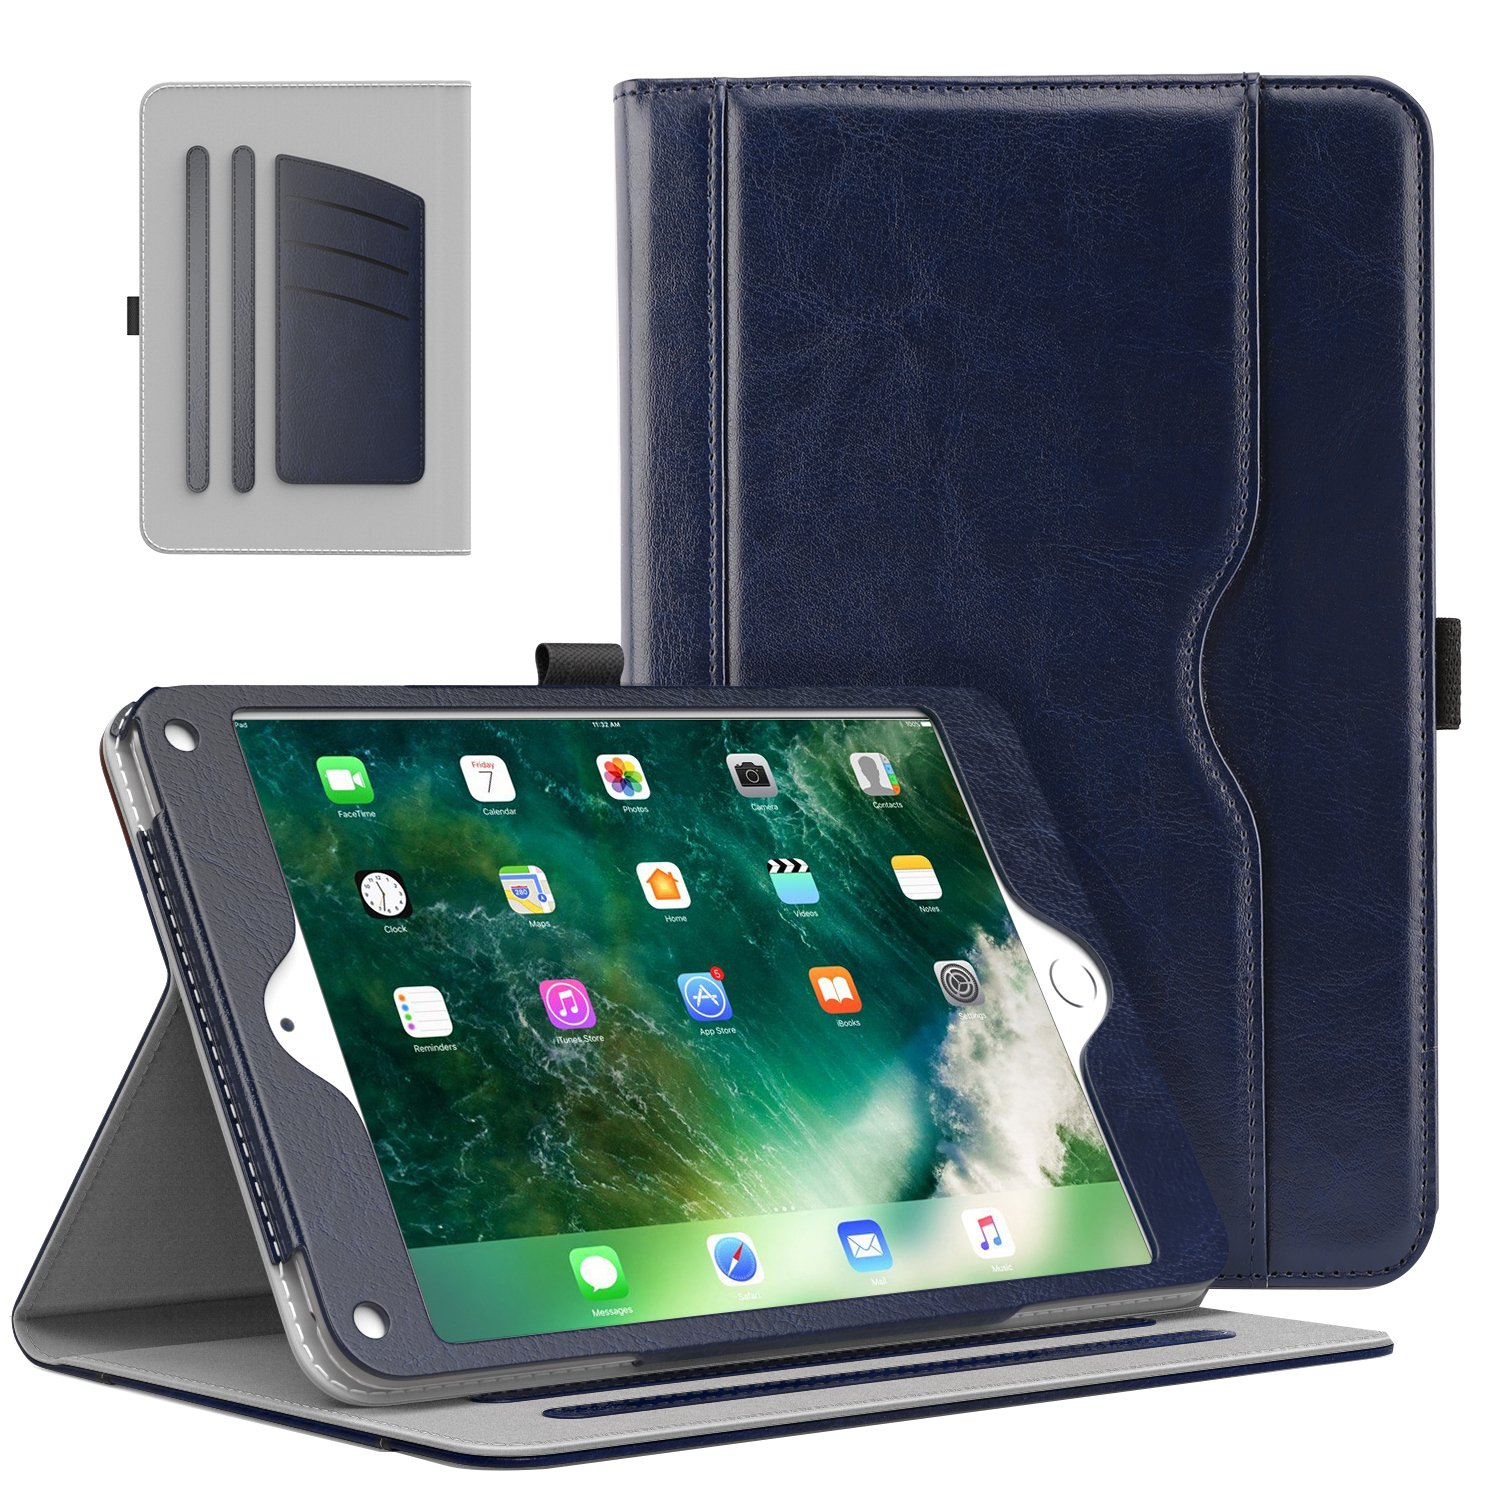 MoKo Case Fit 2018/2017 iPad 9.7 6th/5th Generation/iPad Air/iPad Air 2 Tablet - Slim Folding Stand Folio Cover Case with Document Card Slots, Multiple Viewing Angles, Indigo